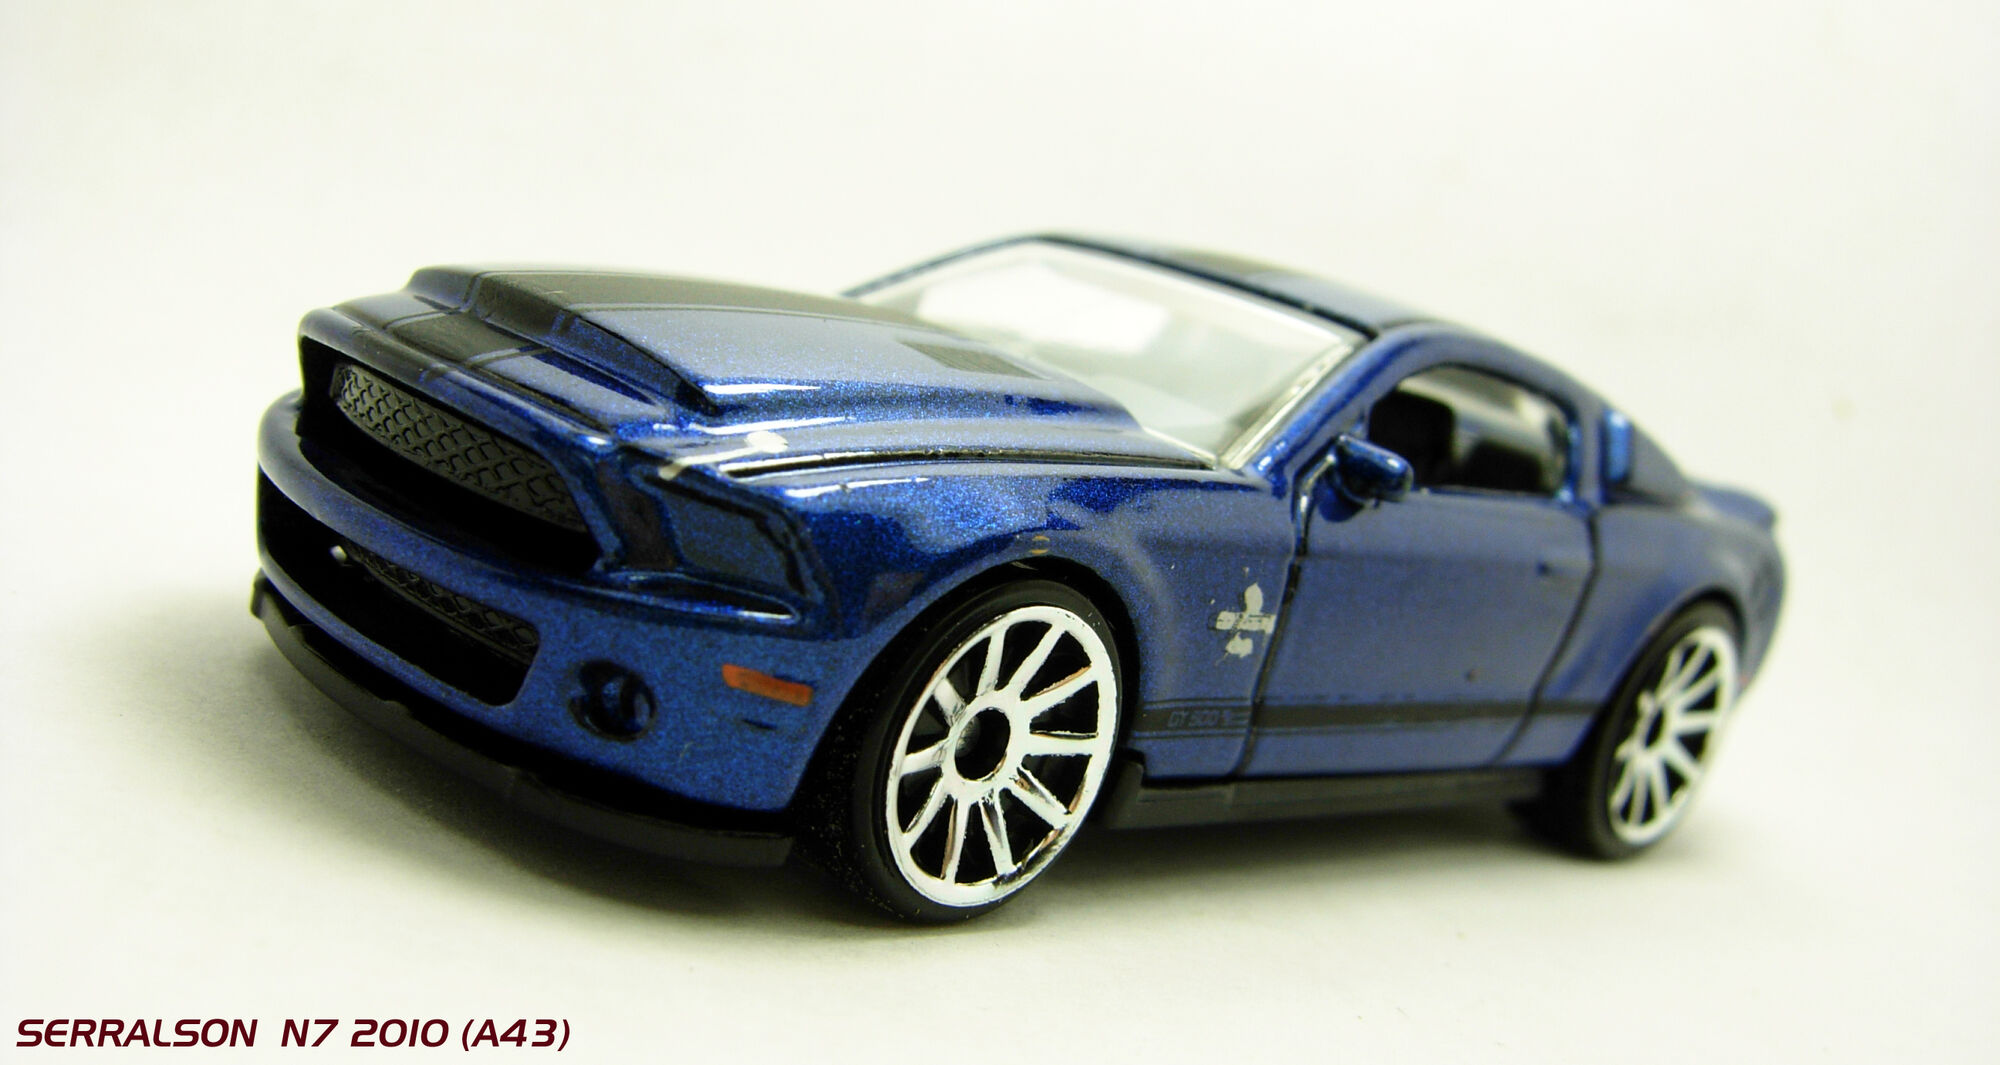 Ford Shelby Gt350r Interior >> '10 Ford Shelby GT500 Super Snake | Hot Wheels Wiki ...